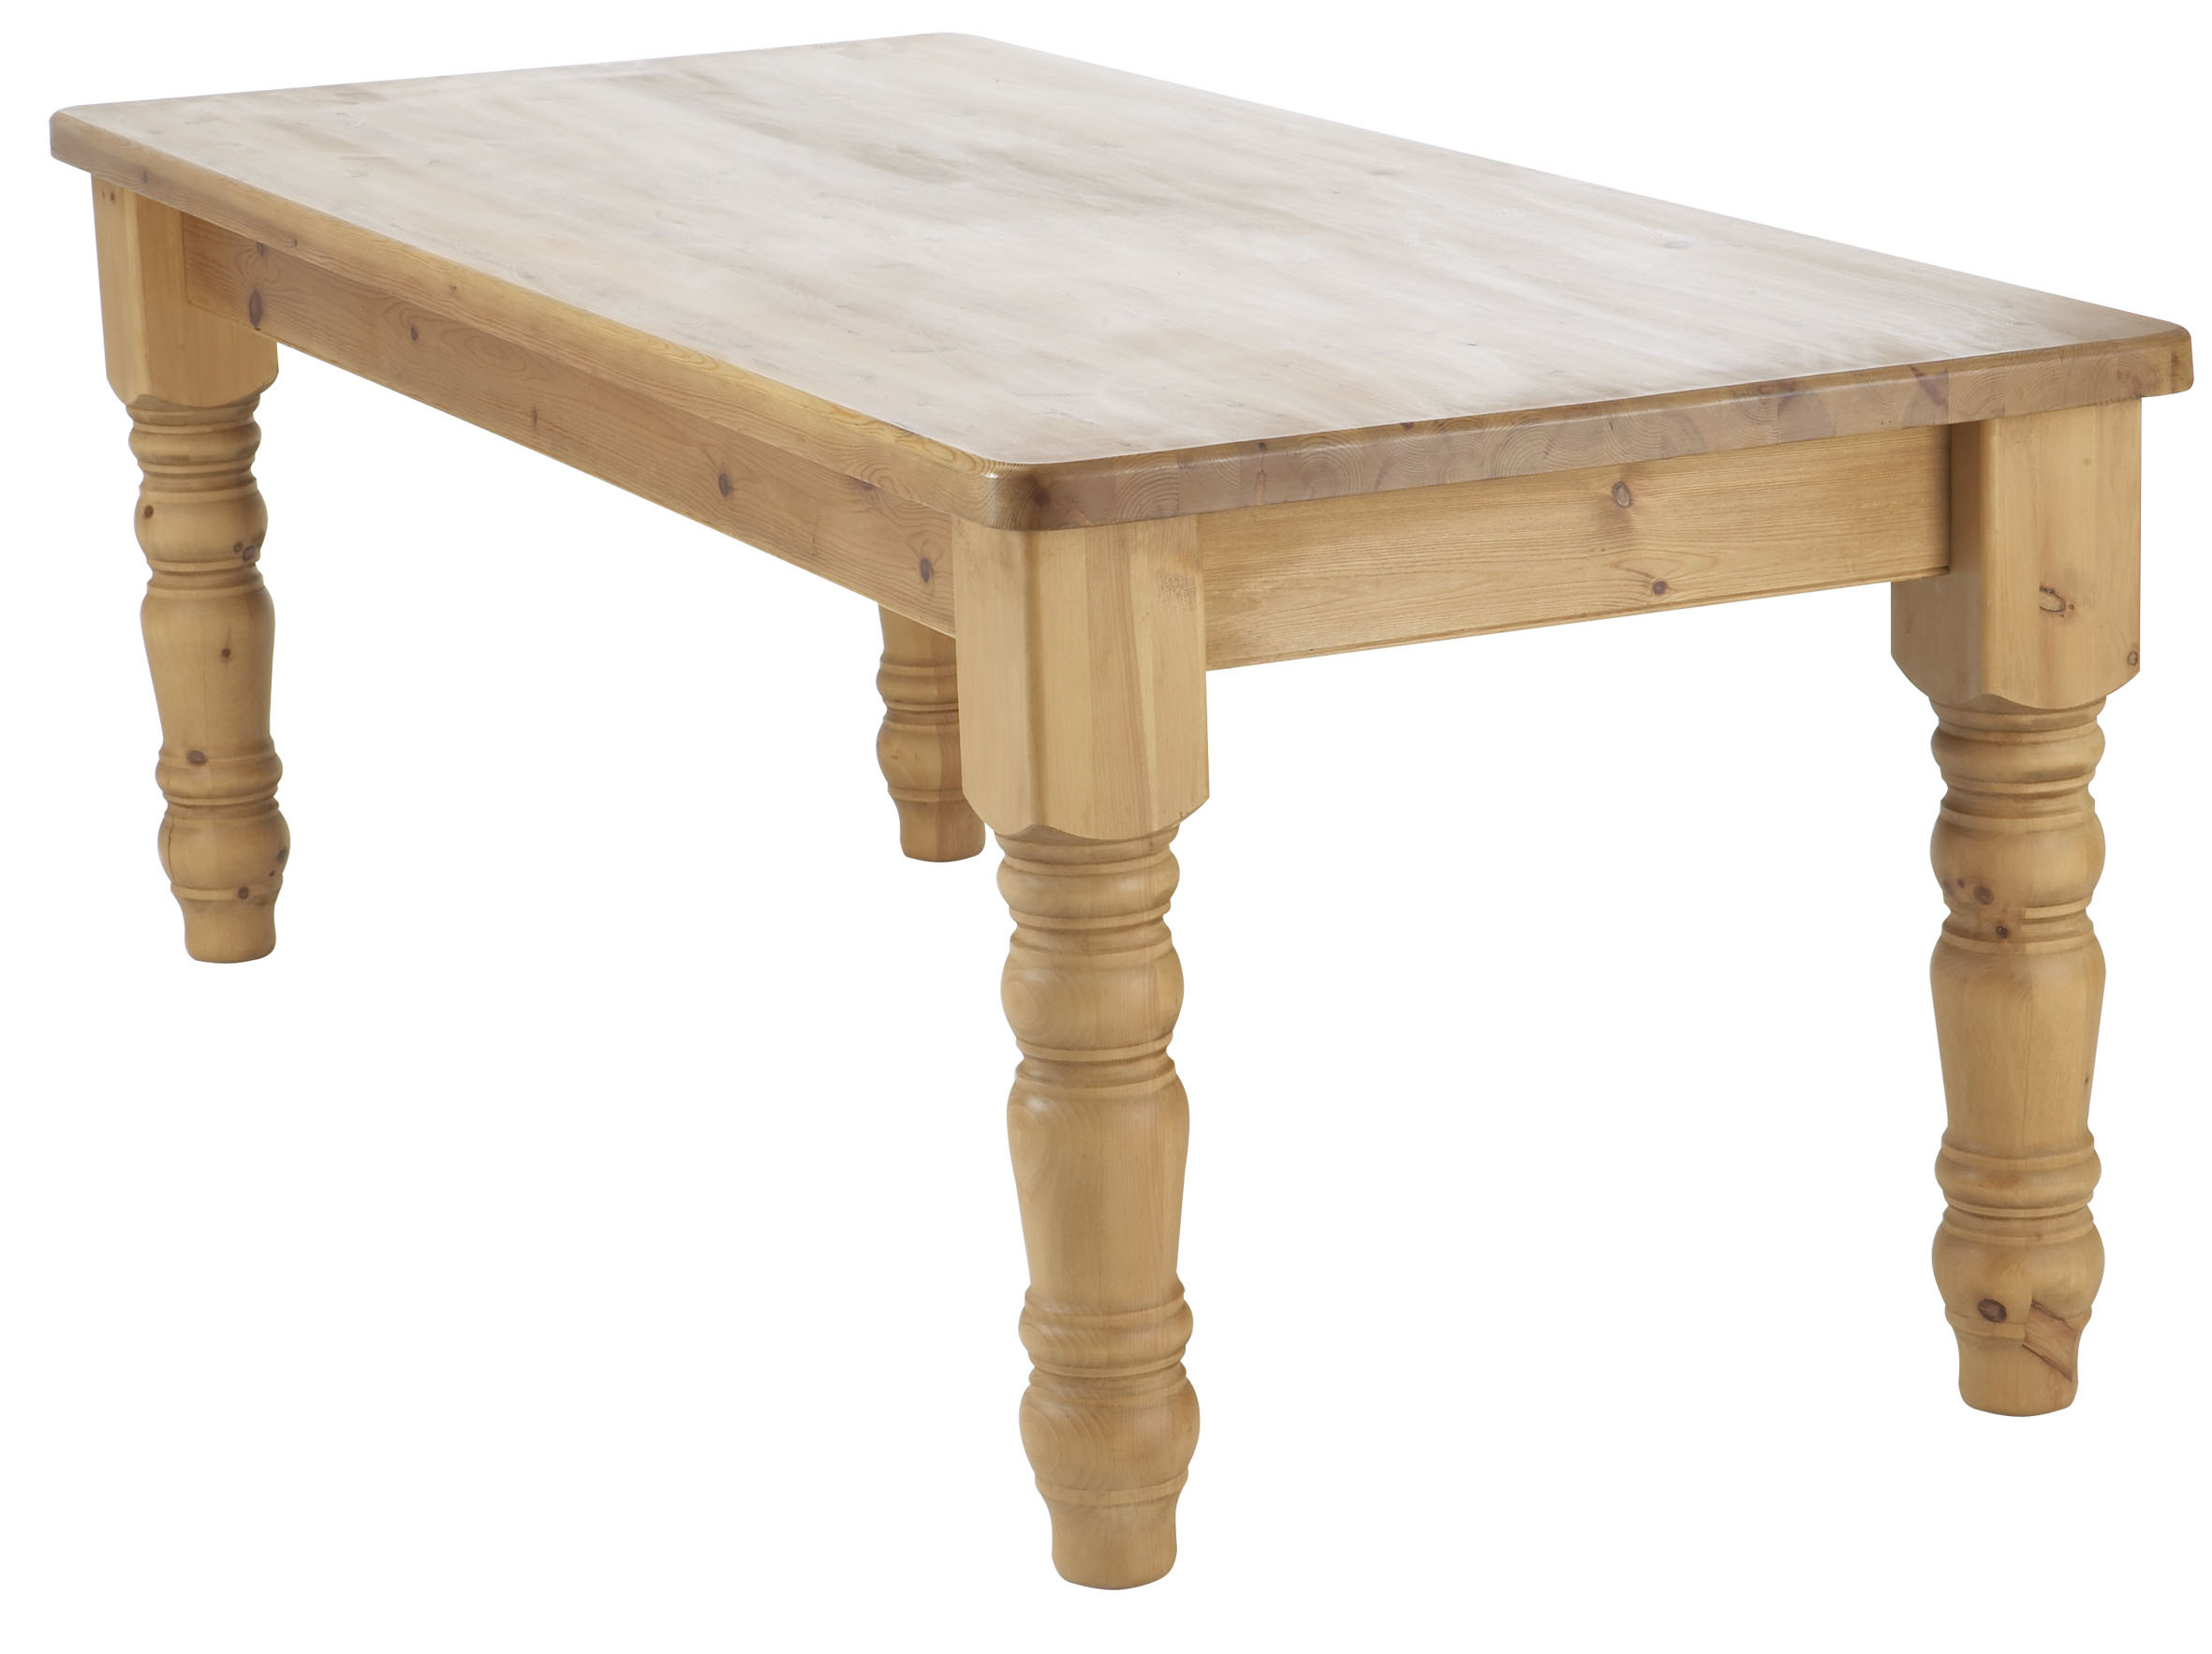 Best ideas about Dining Table Legs . Save or Pin Premier Pine Thick Top Farmhouse Dining Table on 5 legs Now.